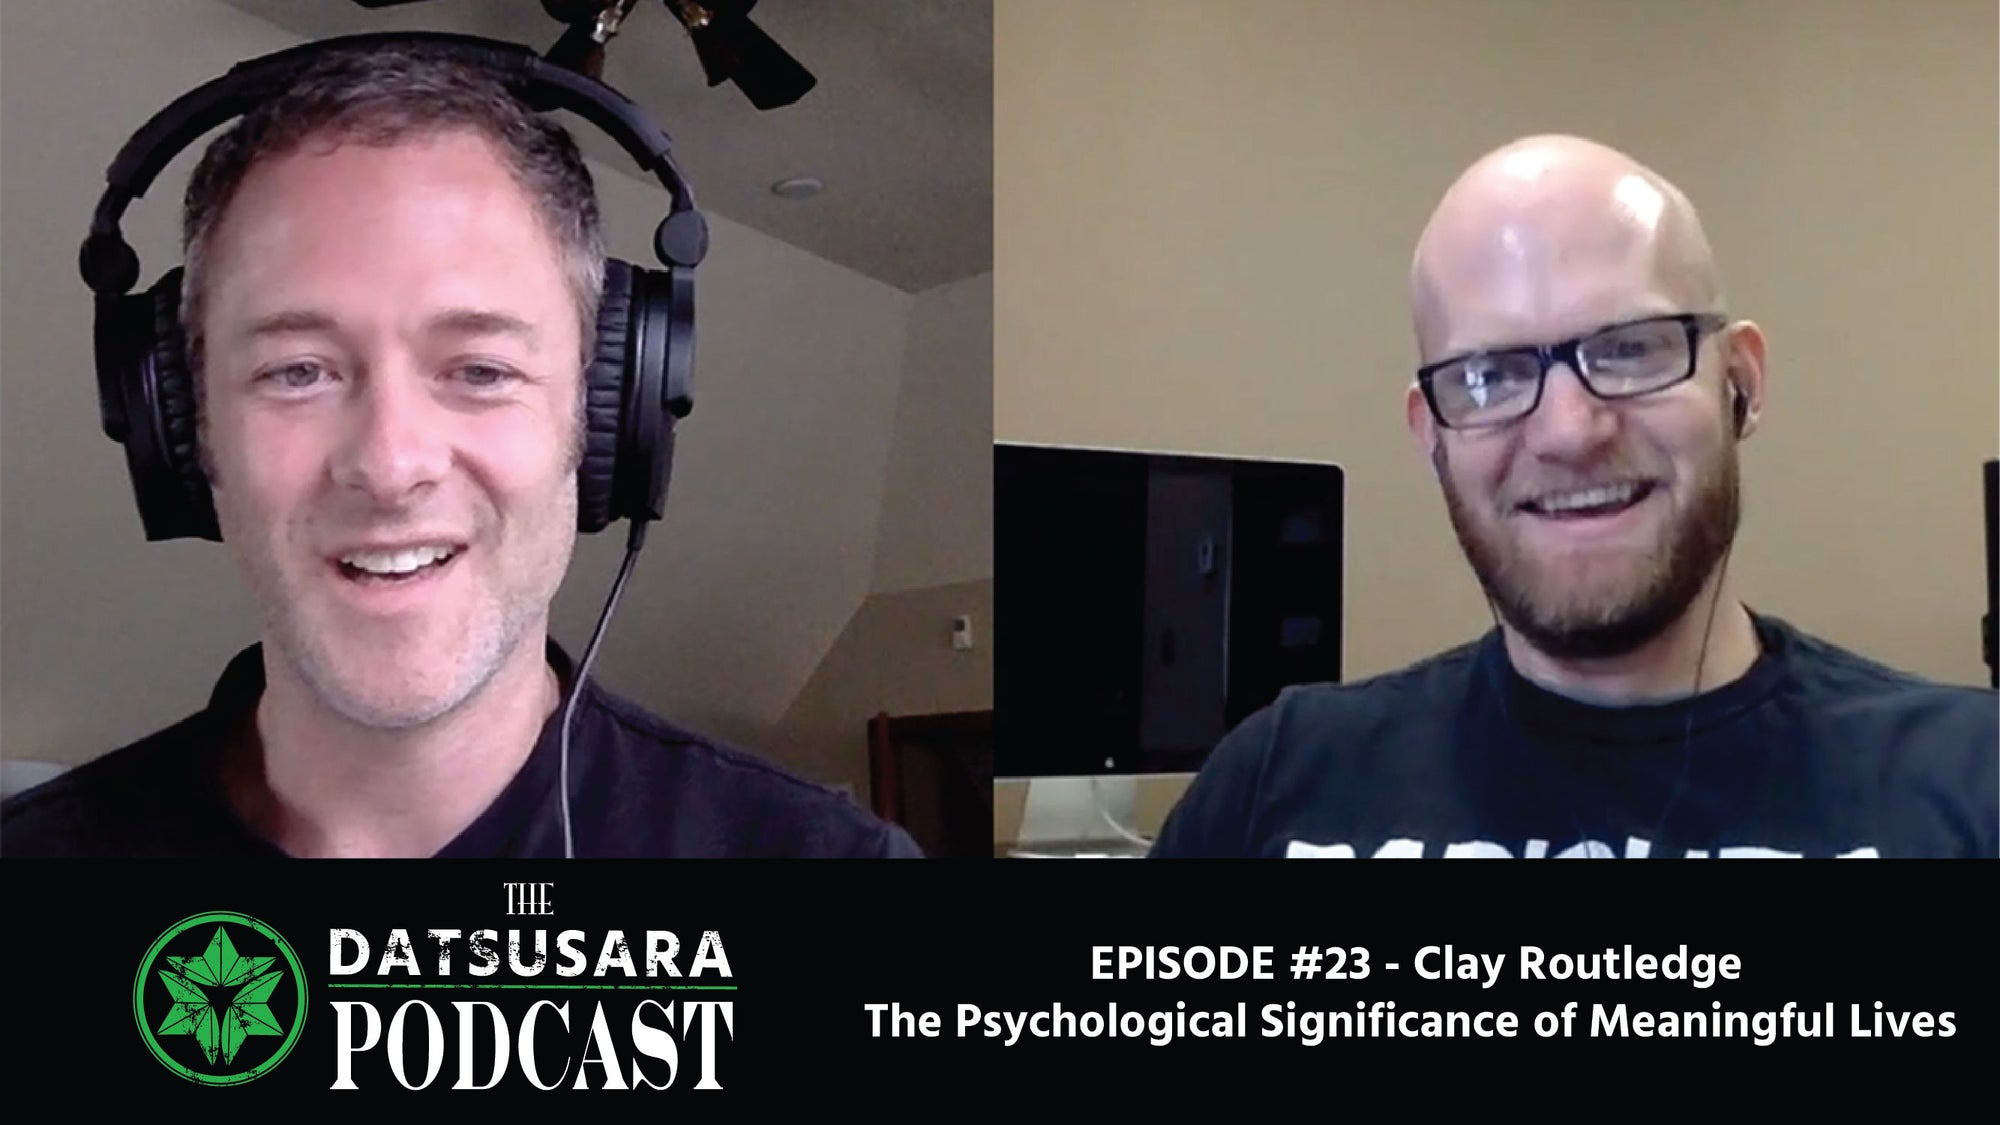 #23 - Clay Routledge - The Psychological Significance of Meaningful Lives